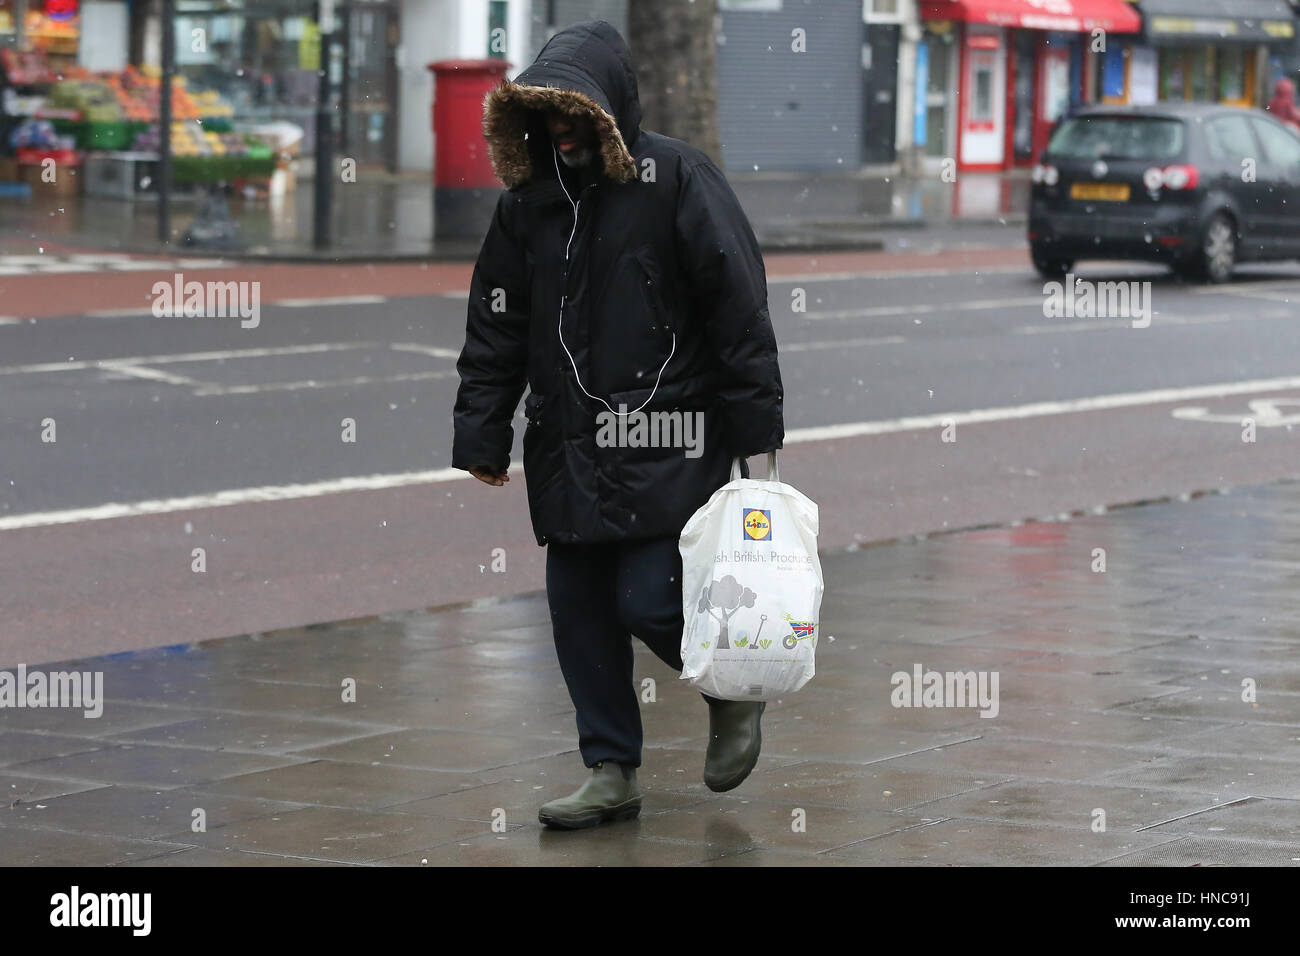 North London, UK. 11th Feb, 2017. Shoppers out in the rain and sleet showers in North London. Credit: Dinendra Haria/Alamy Stock Photo